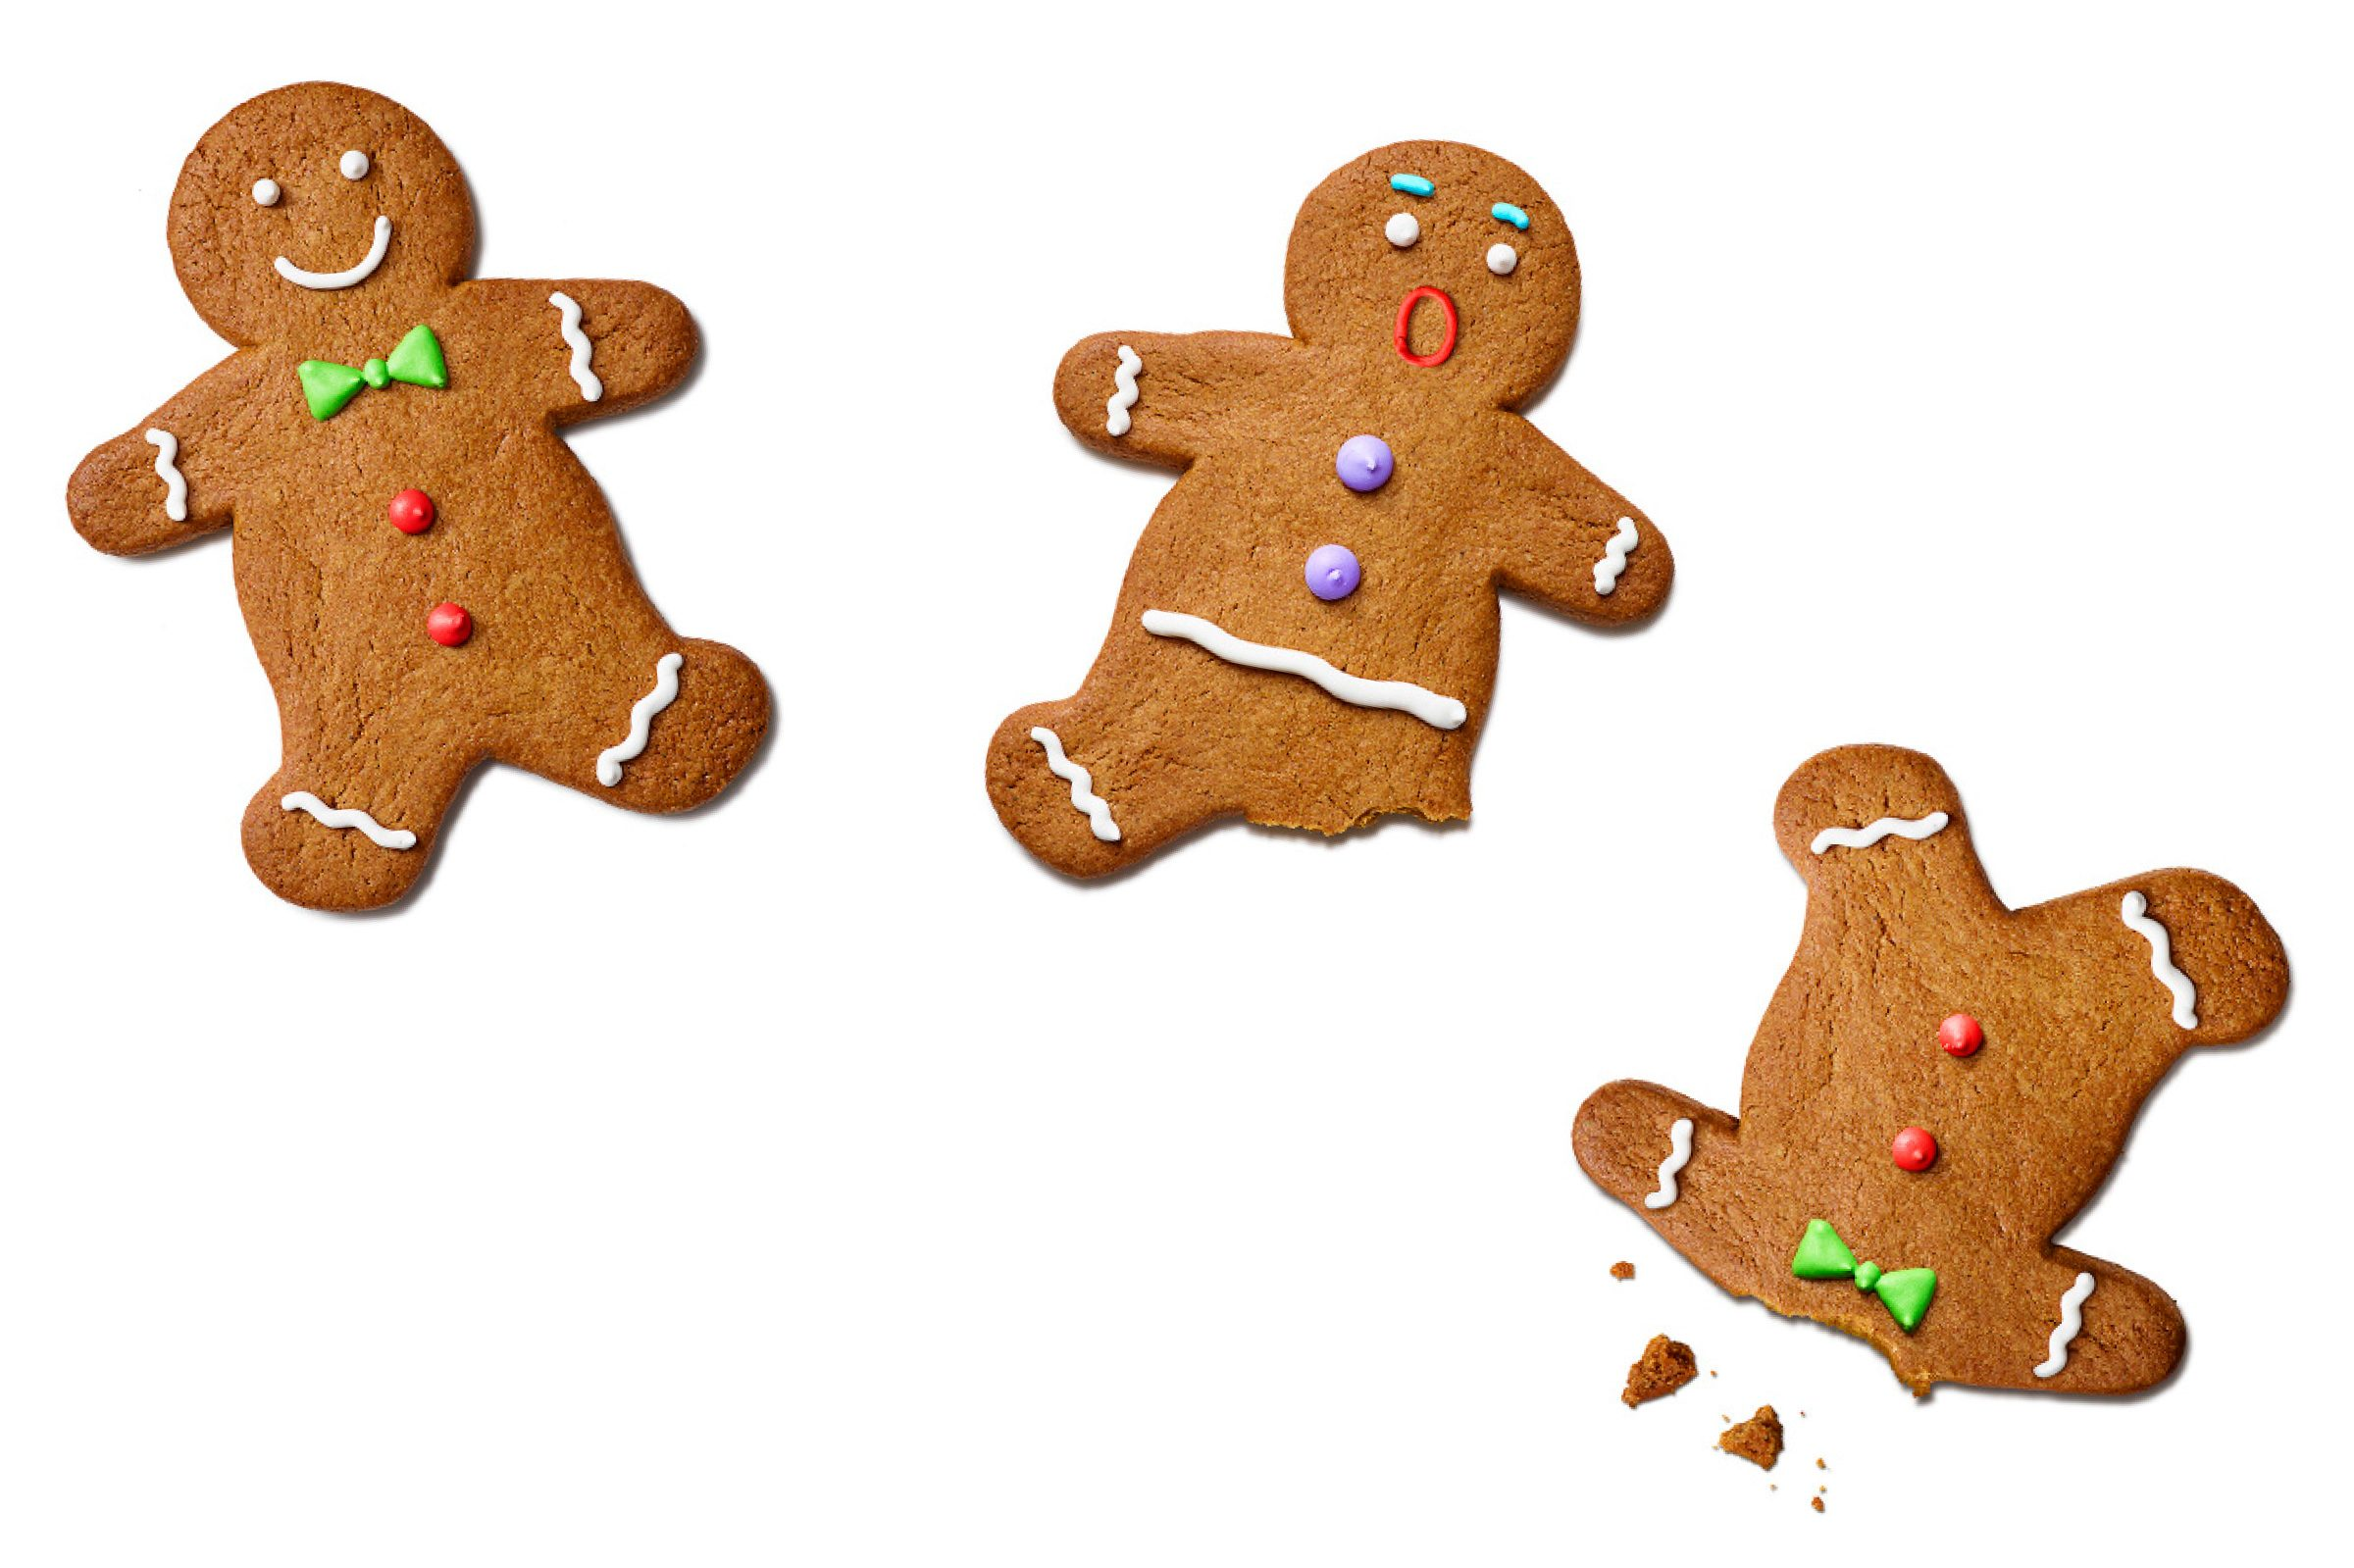 01-holiday-eating-habits-gingerbread-men.jpg